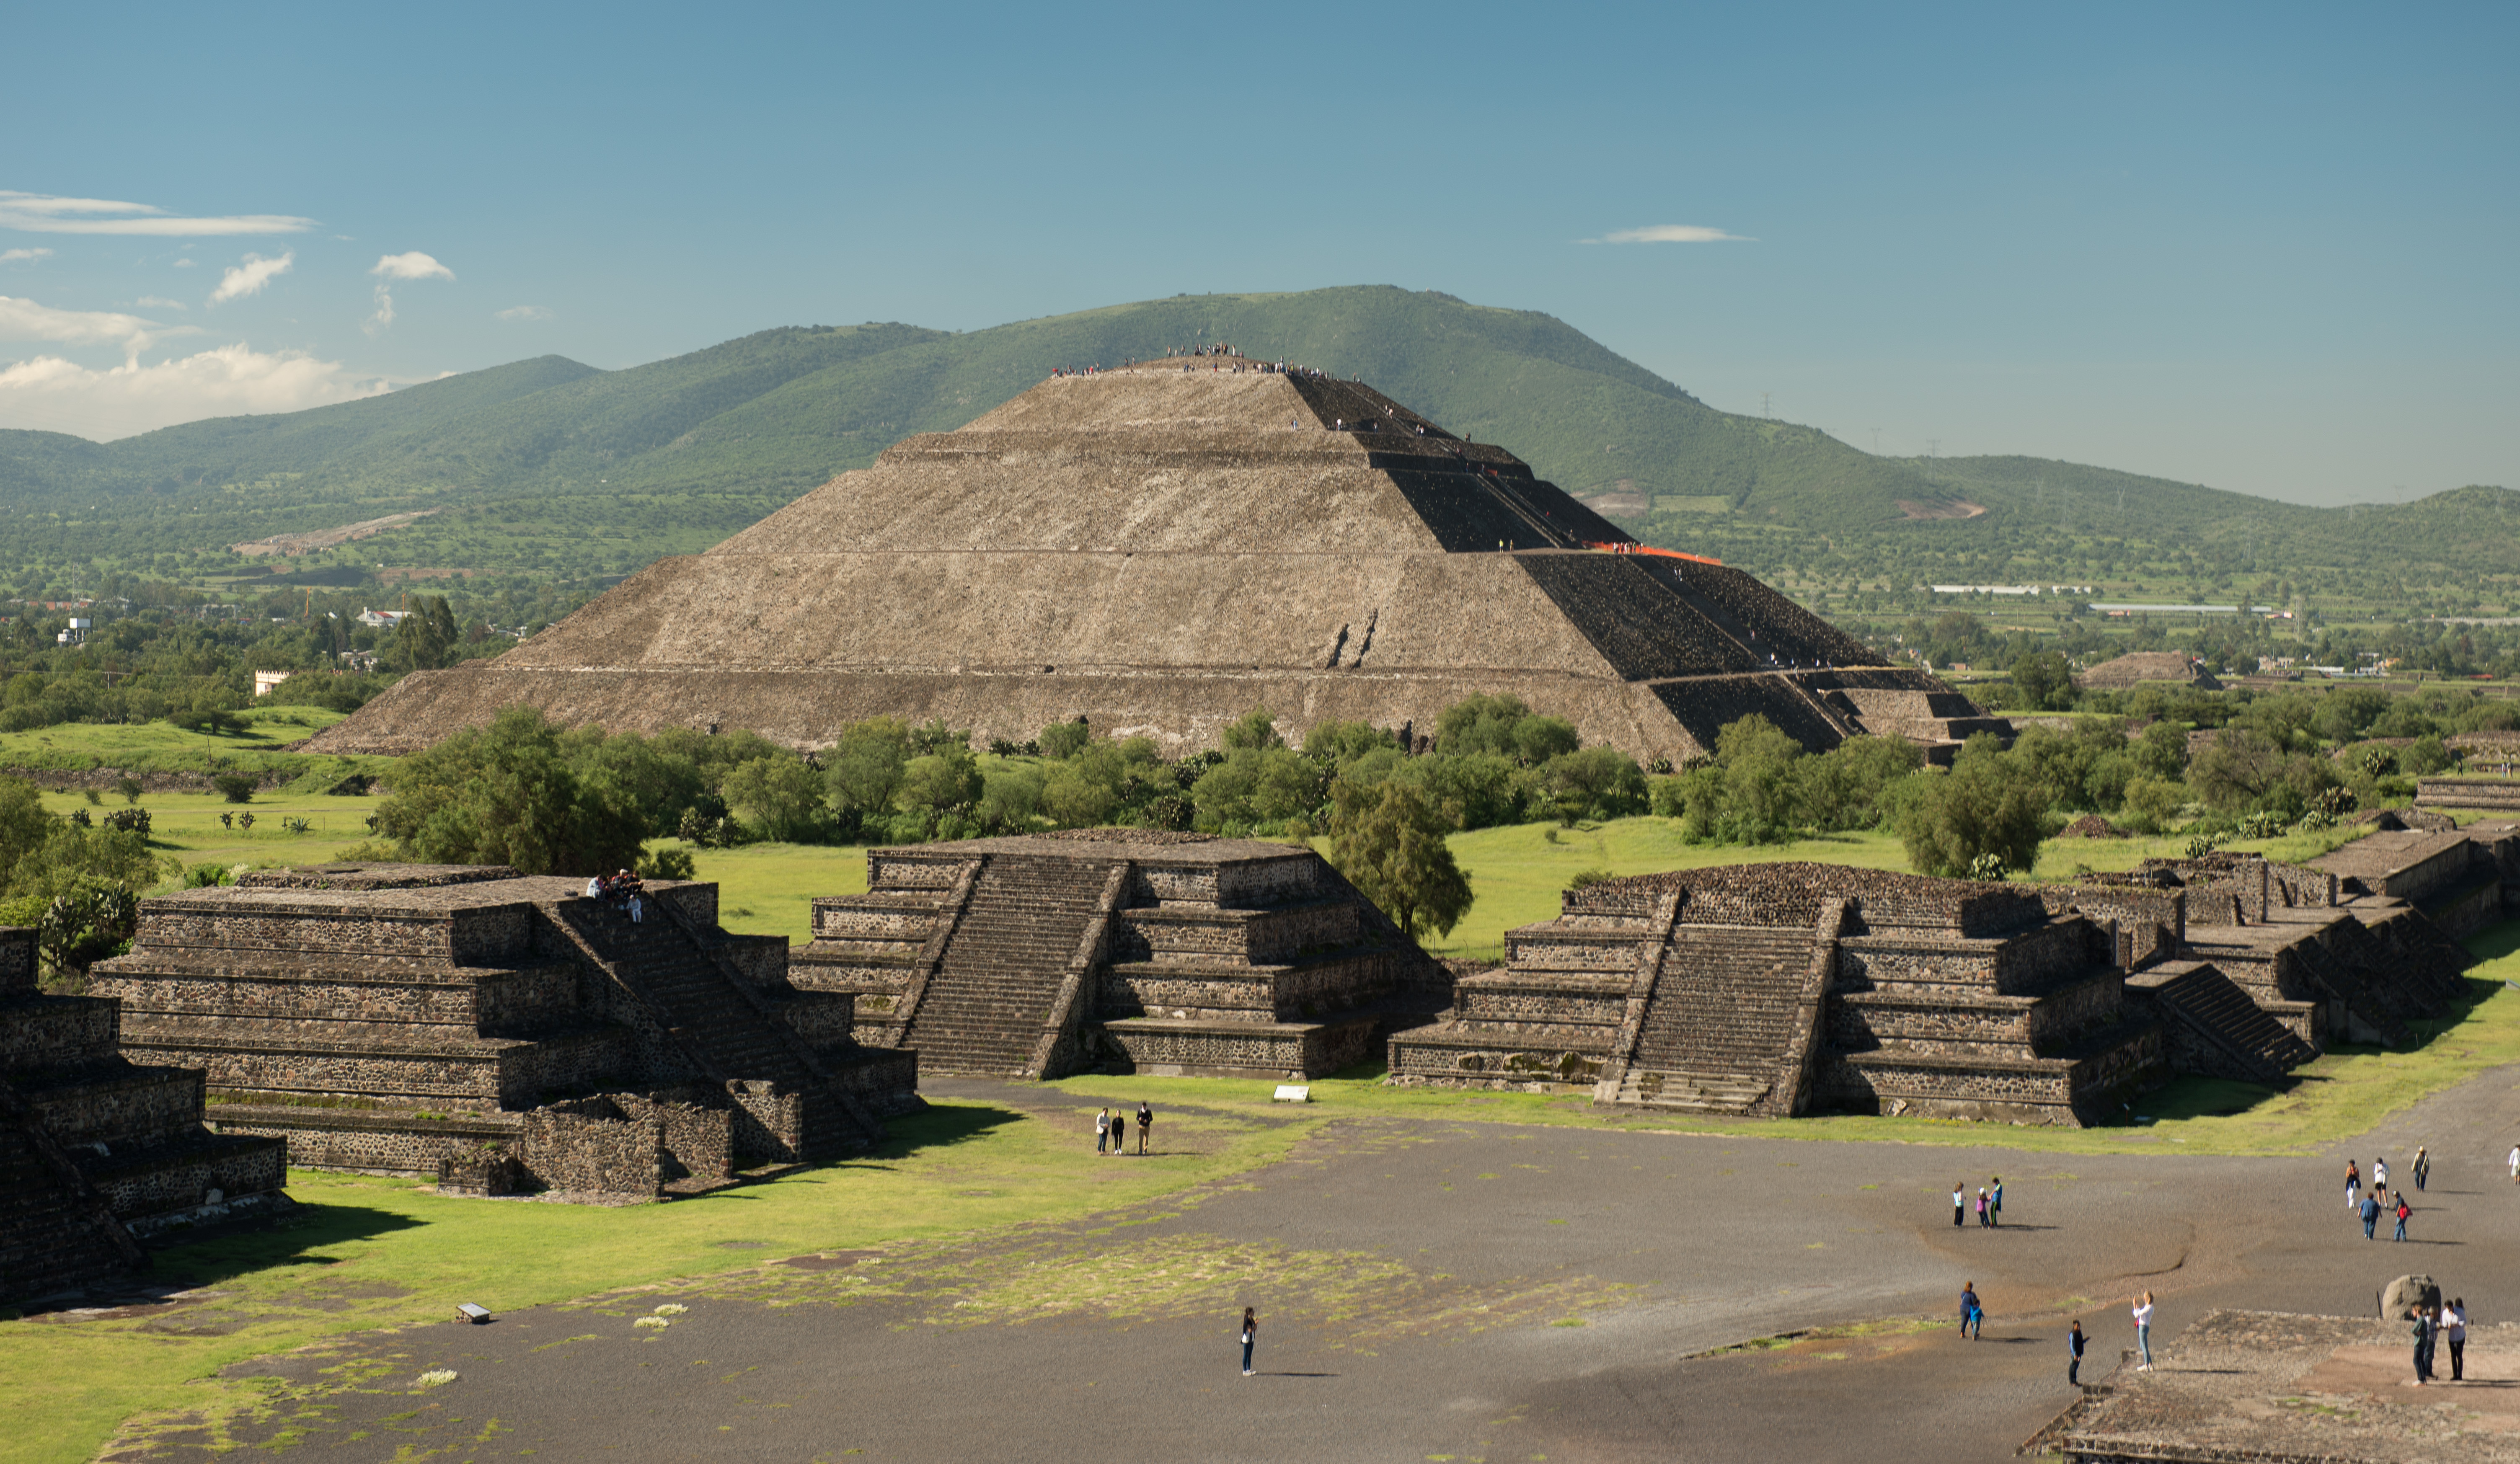 Tickets for Teotihuacán: Fast-Track Admission & Transport from Mexico City